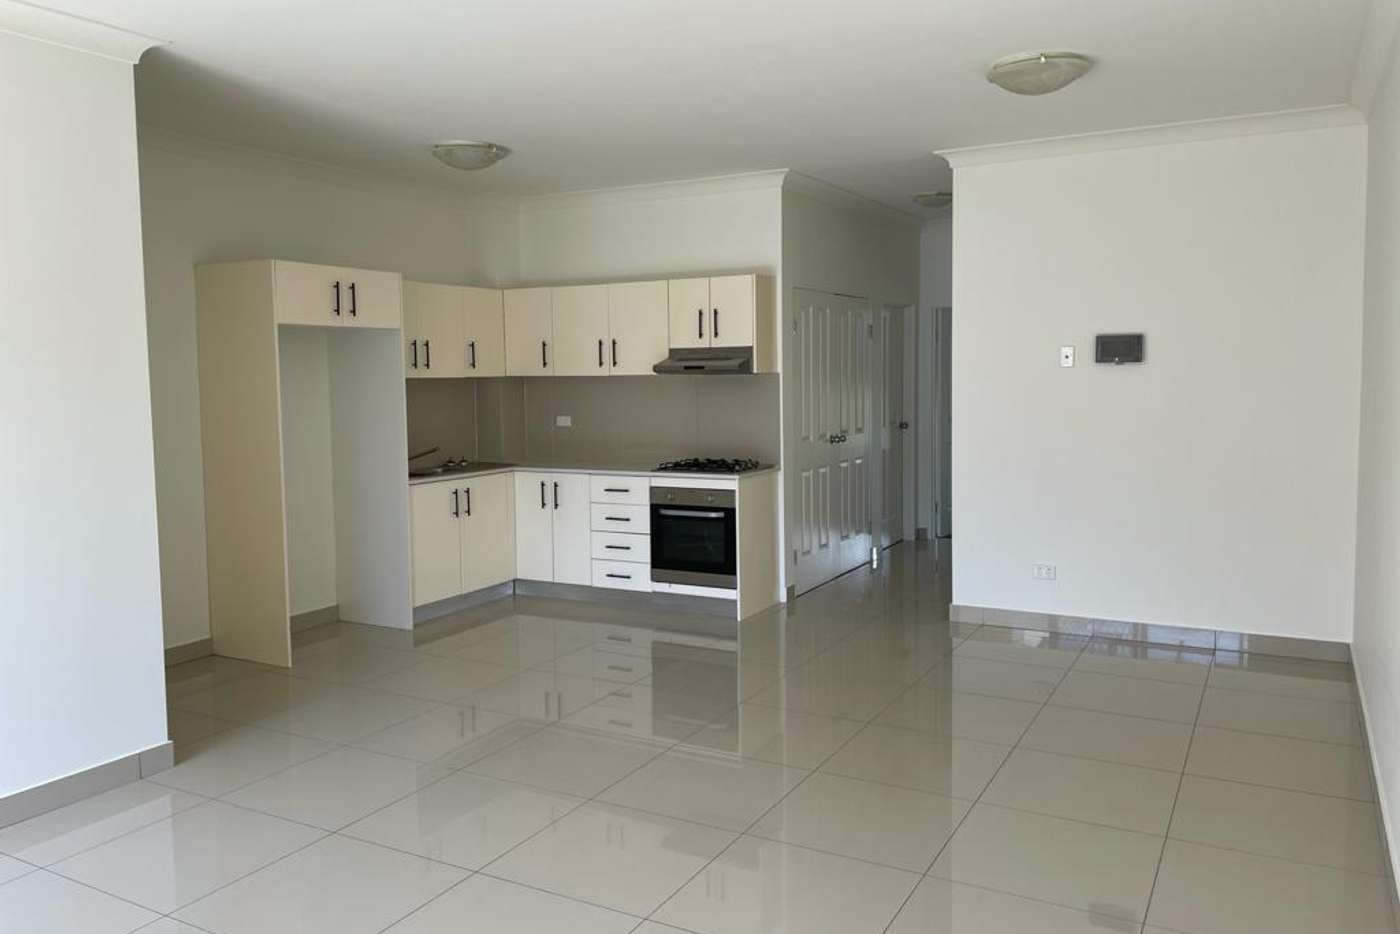 Sixth view of Homely apartment listing, 14/134-136 Woodville Road, Merrylands NSW 2160